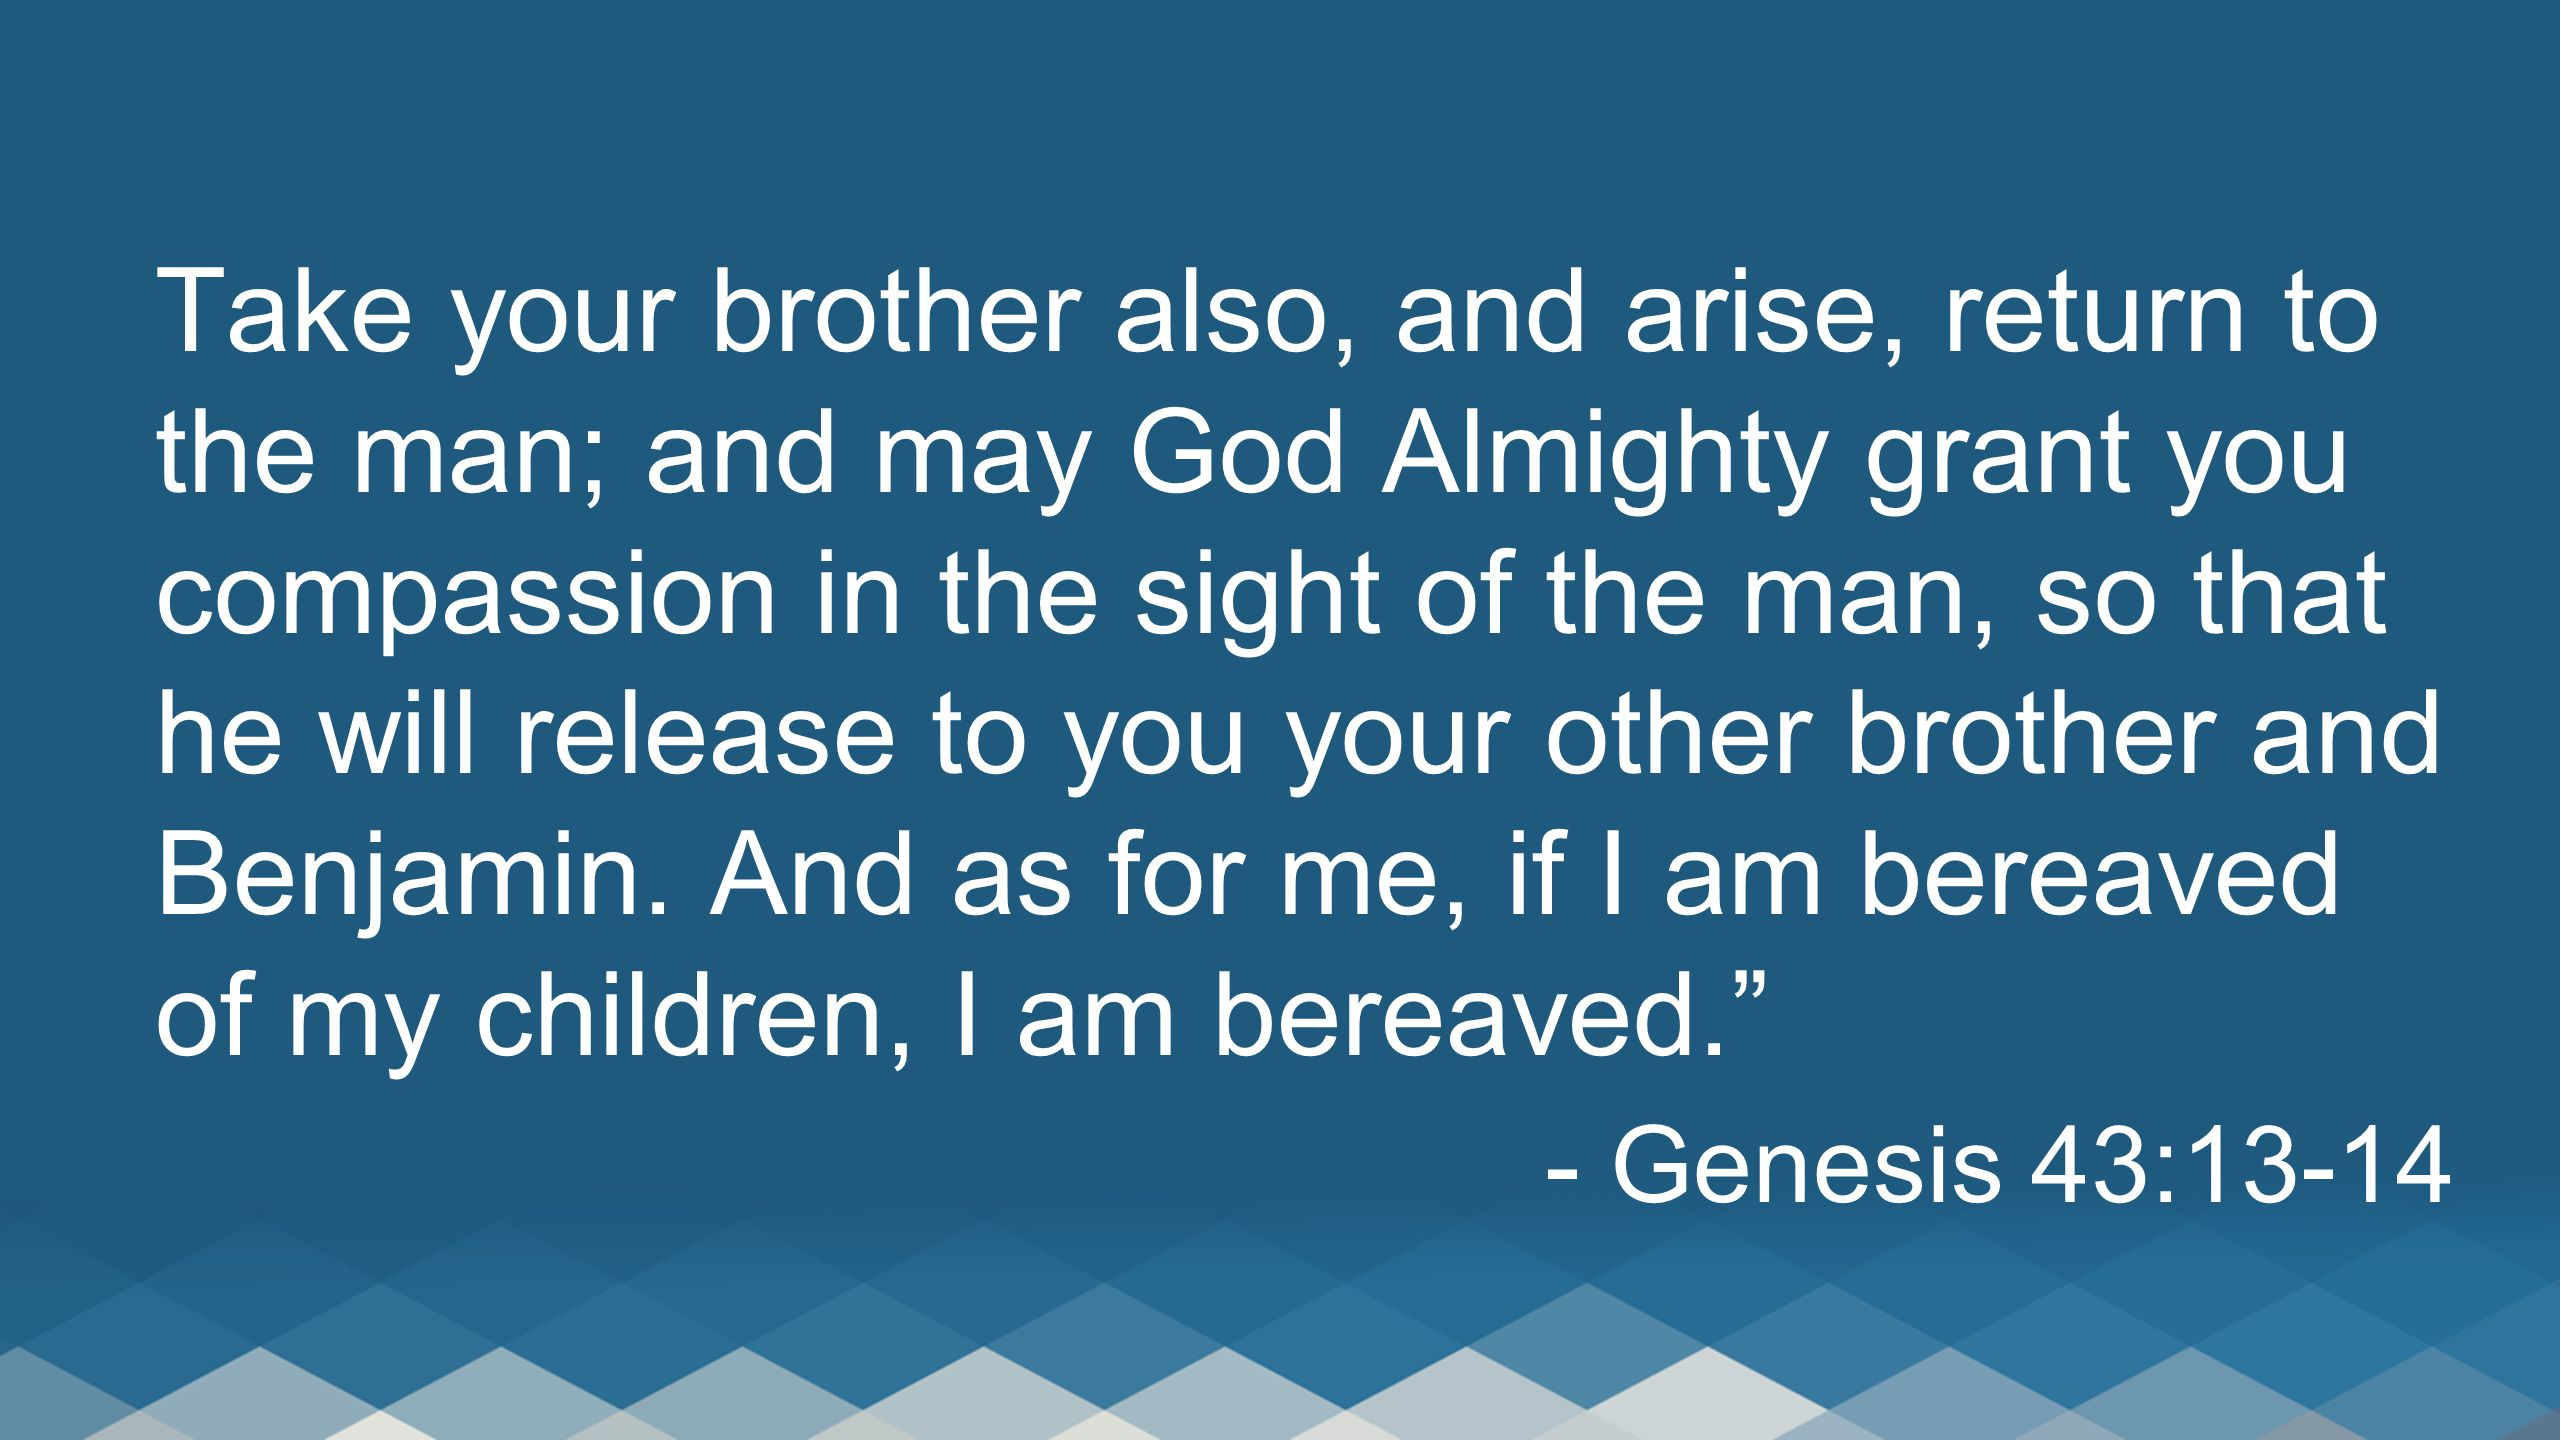 Take your brother also, and arise, return to the man; and may God Almighty grant you compassion in the sight of the man, so that he will release to yo